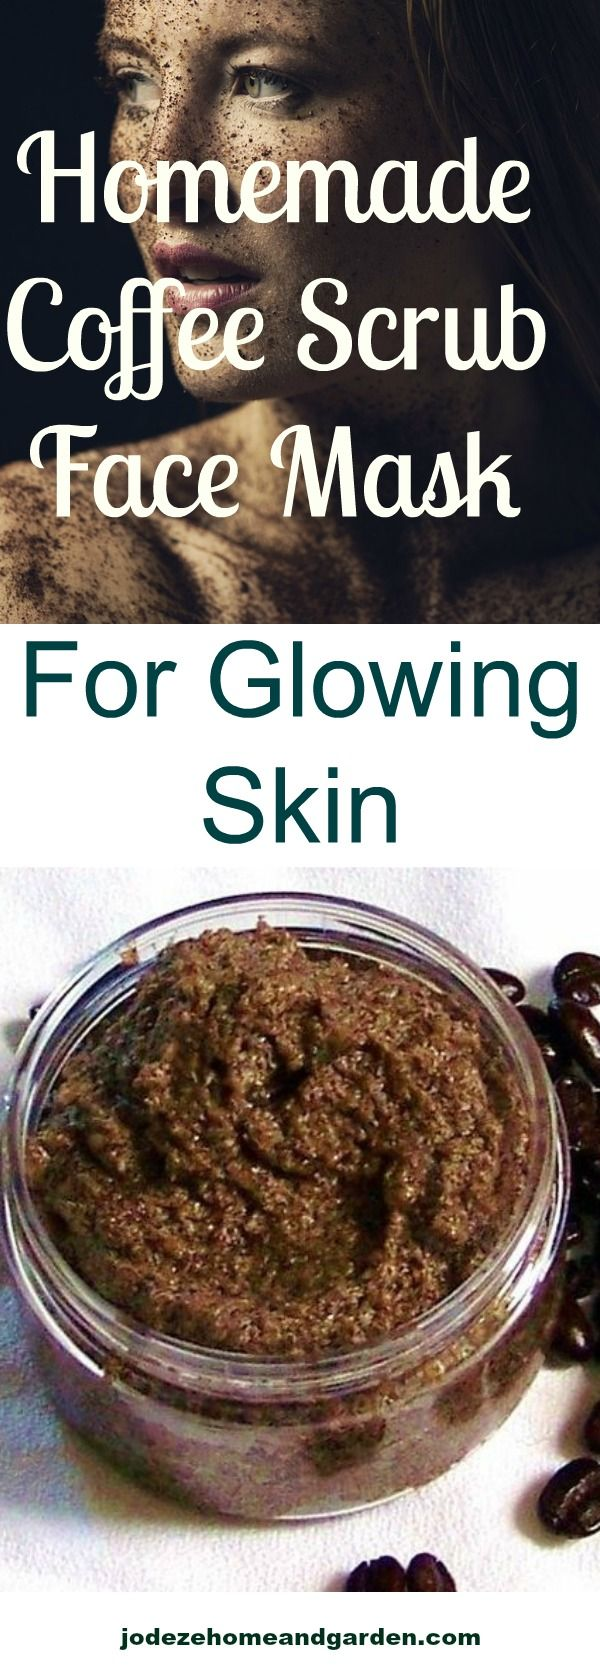 DIY Homemade Coffee Scrub and Face Mask. This homemade coffee scrub face mask smooths away my dead skin cells, deeply nourishes my skin and leaves me with a radiant, glowing complexion.